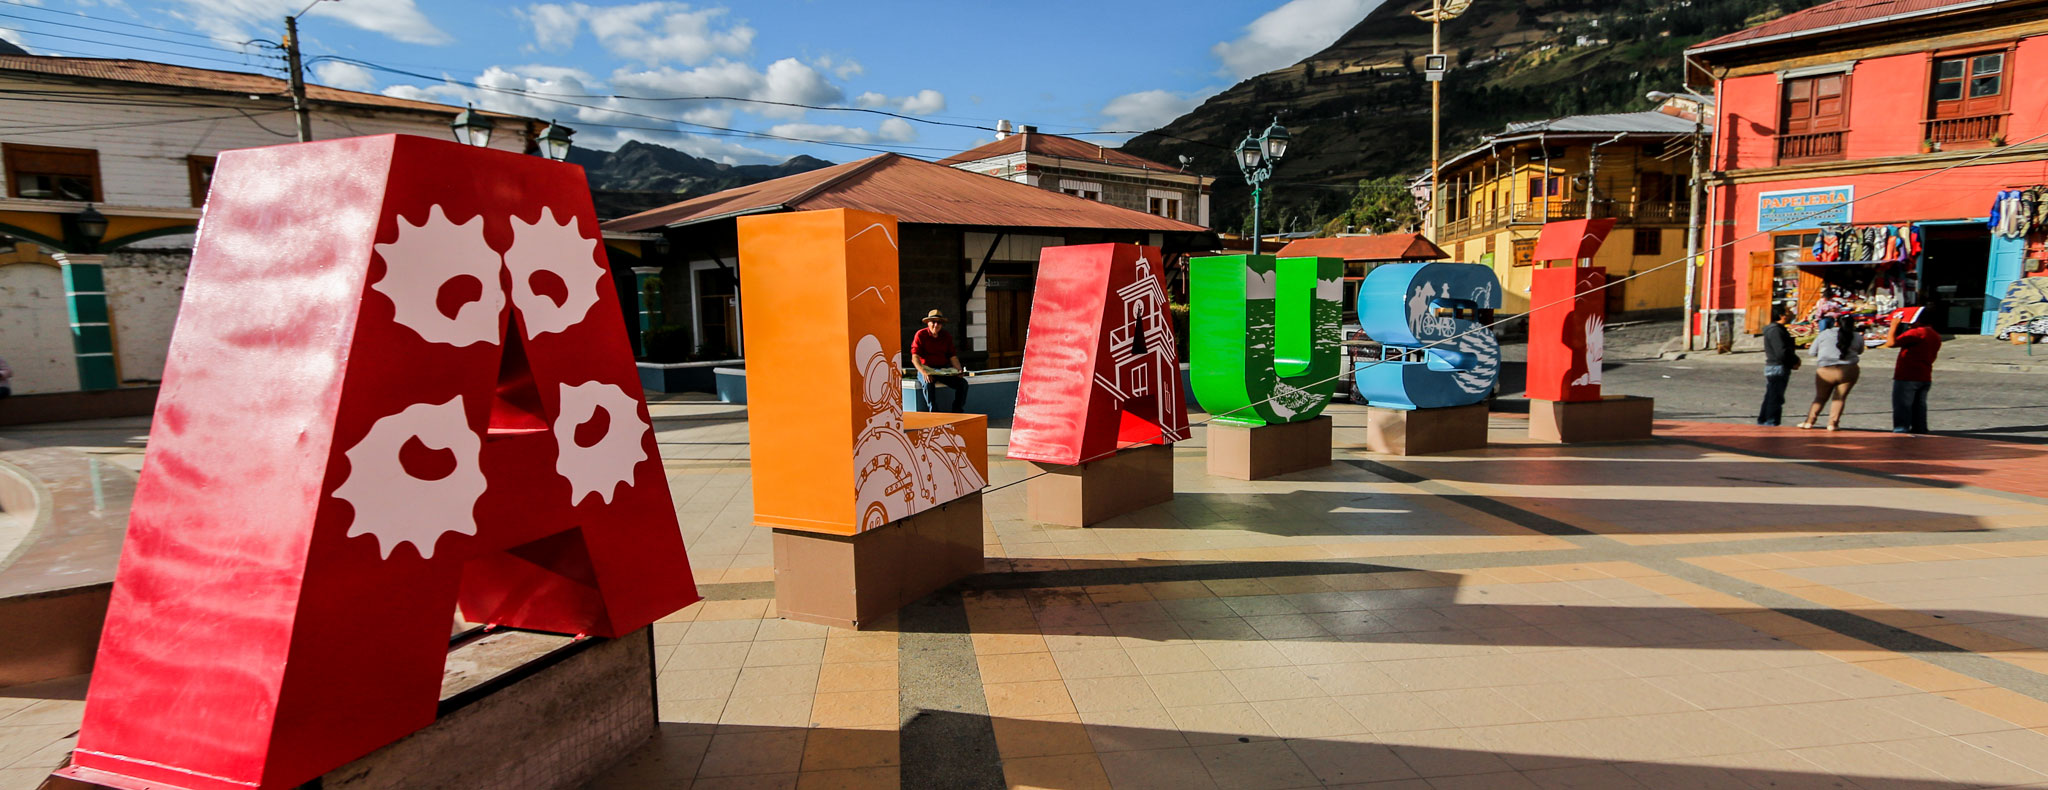 Big colorful letters at the historic center of Alausí, Ecuador